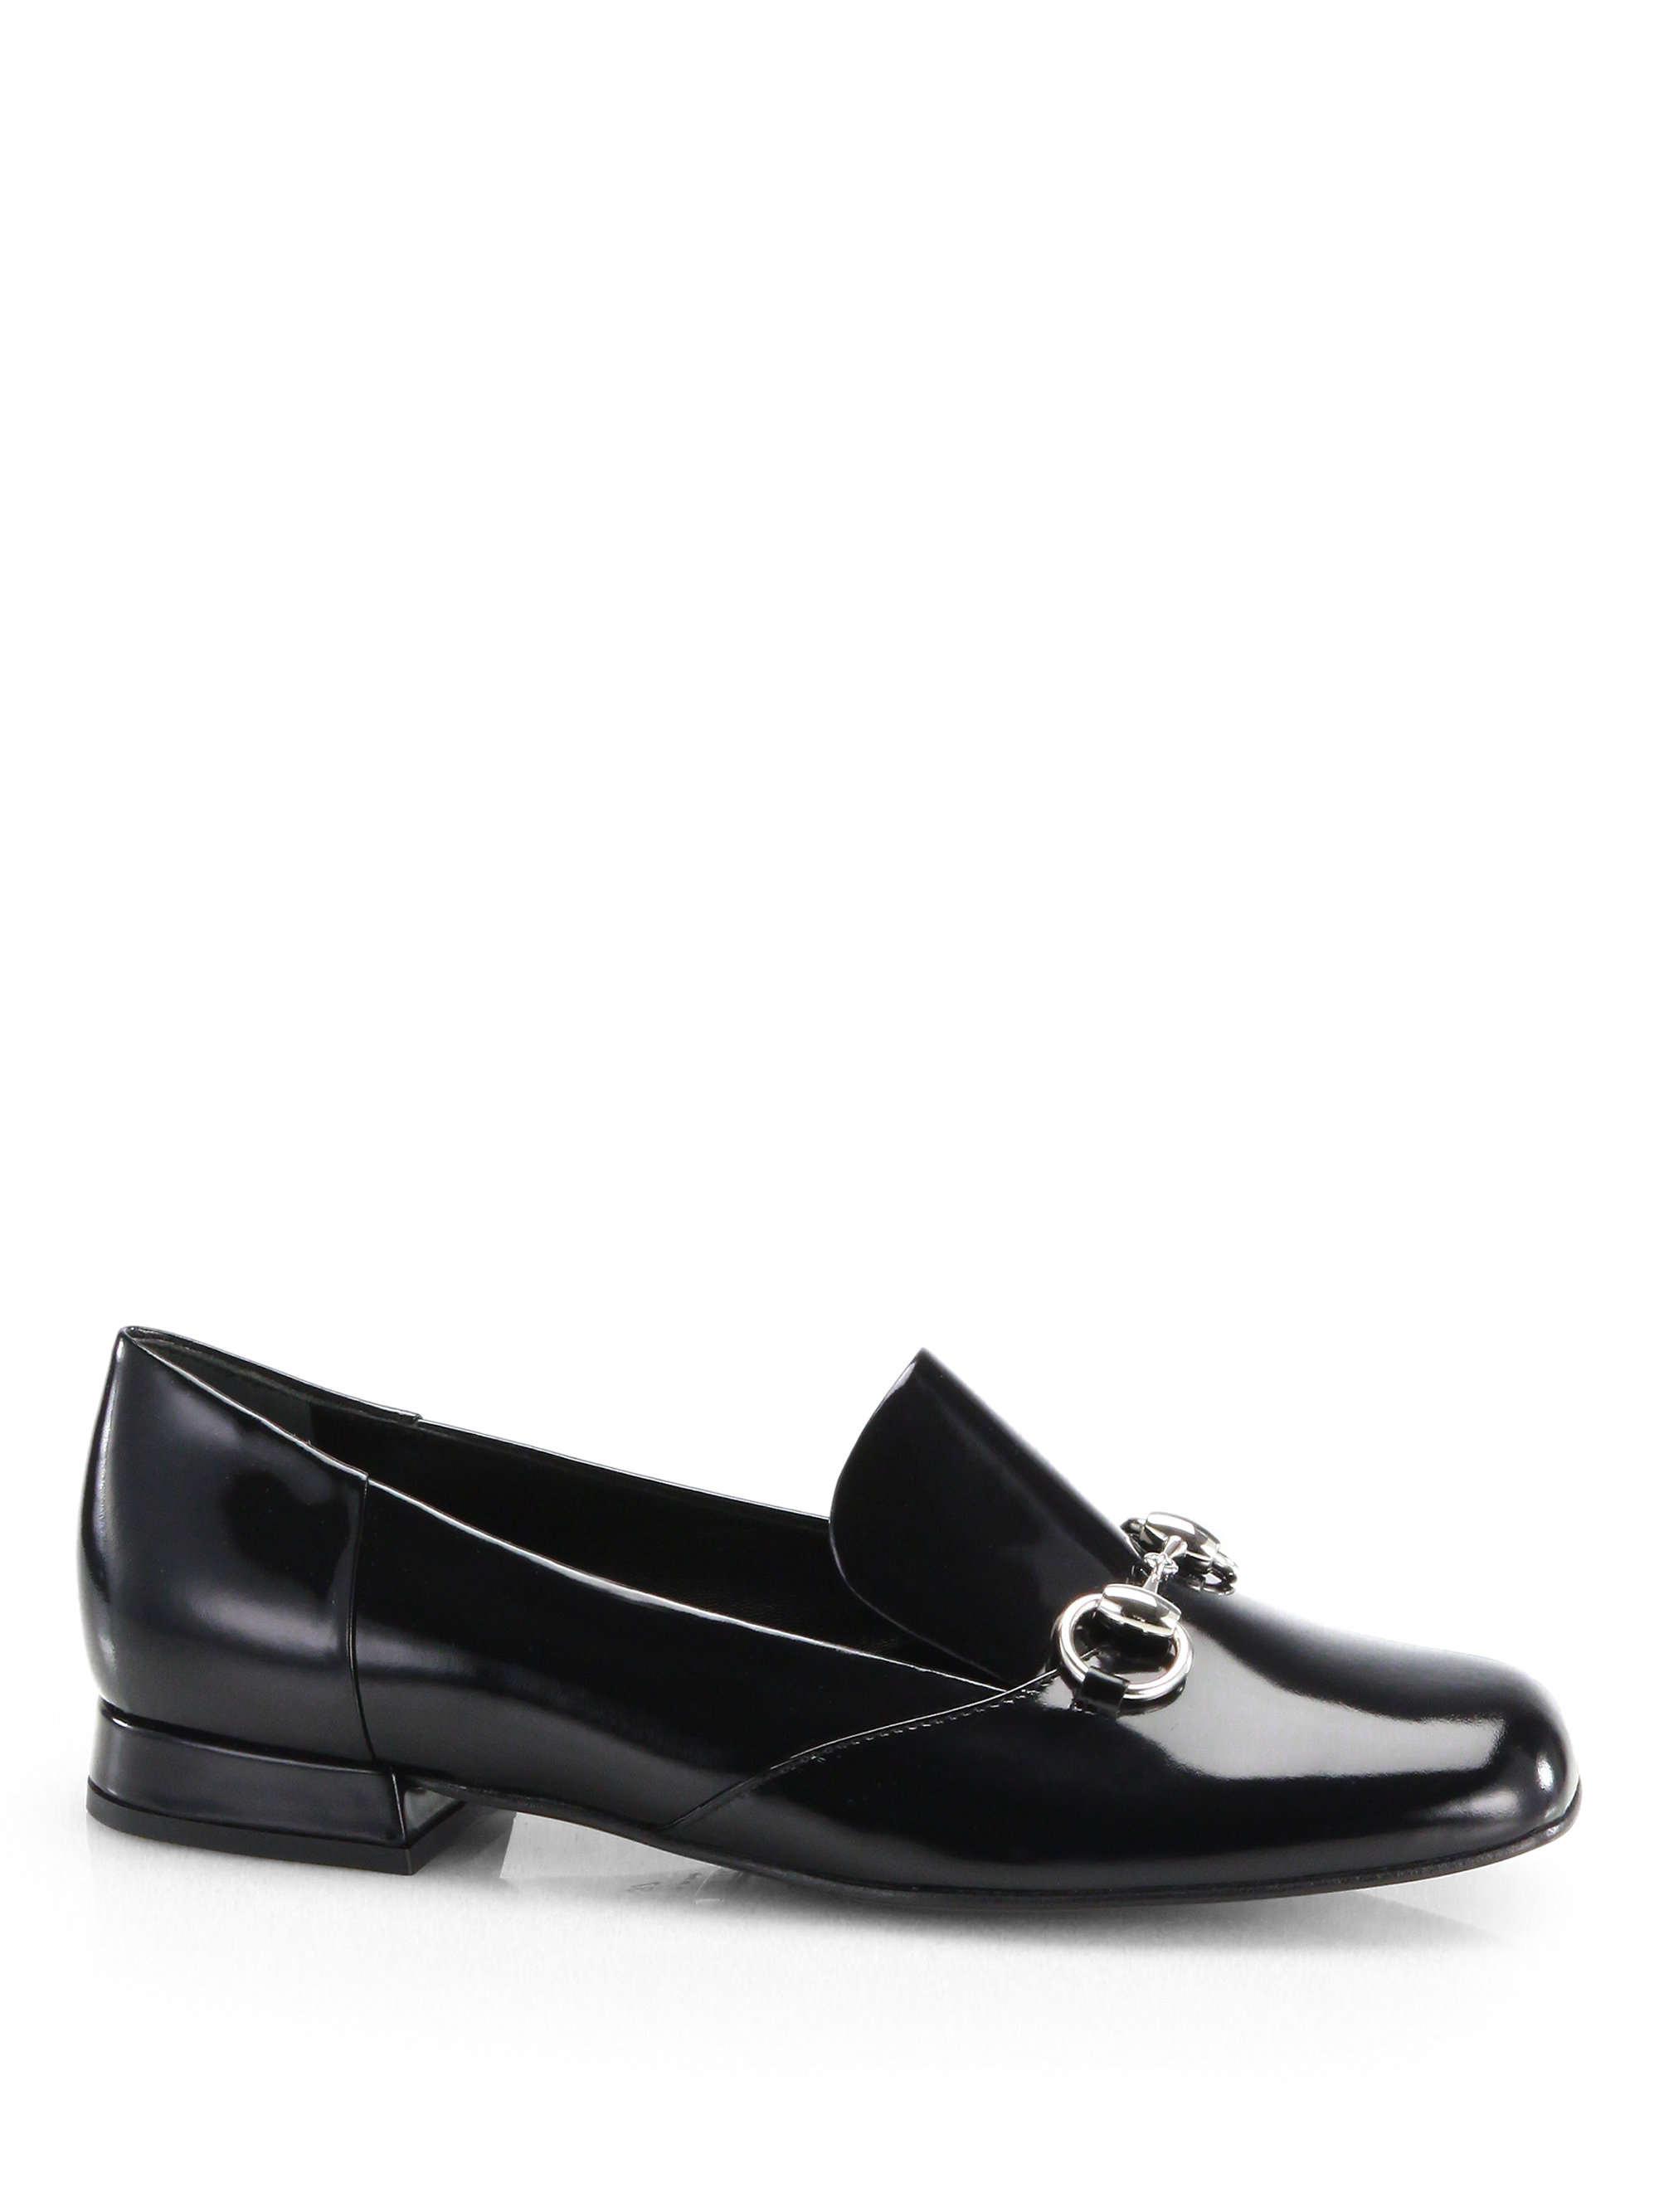 Gucci Patent Leather Horsebit Loafers In Black Lyst